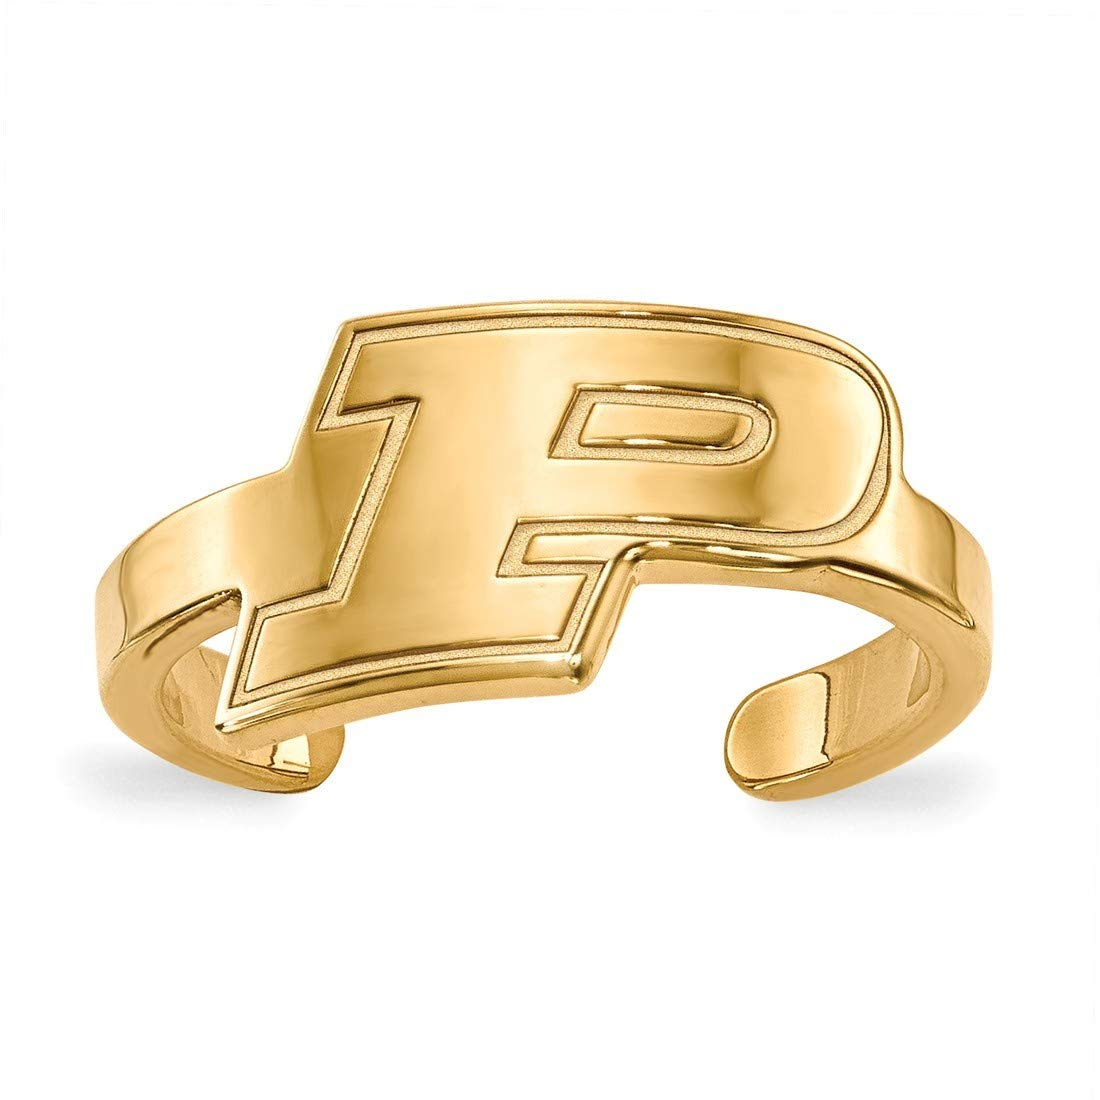 Gold-Plated Sterling Silver Purdue Toe Ring by LogoArt GP024PU